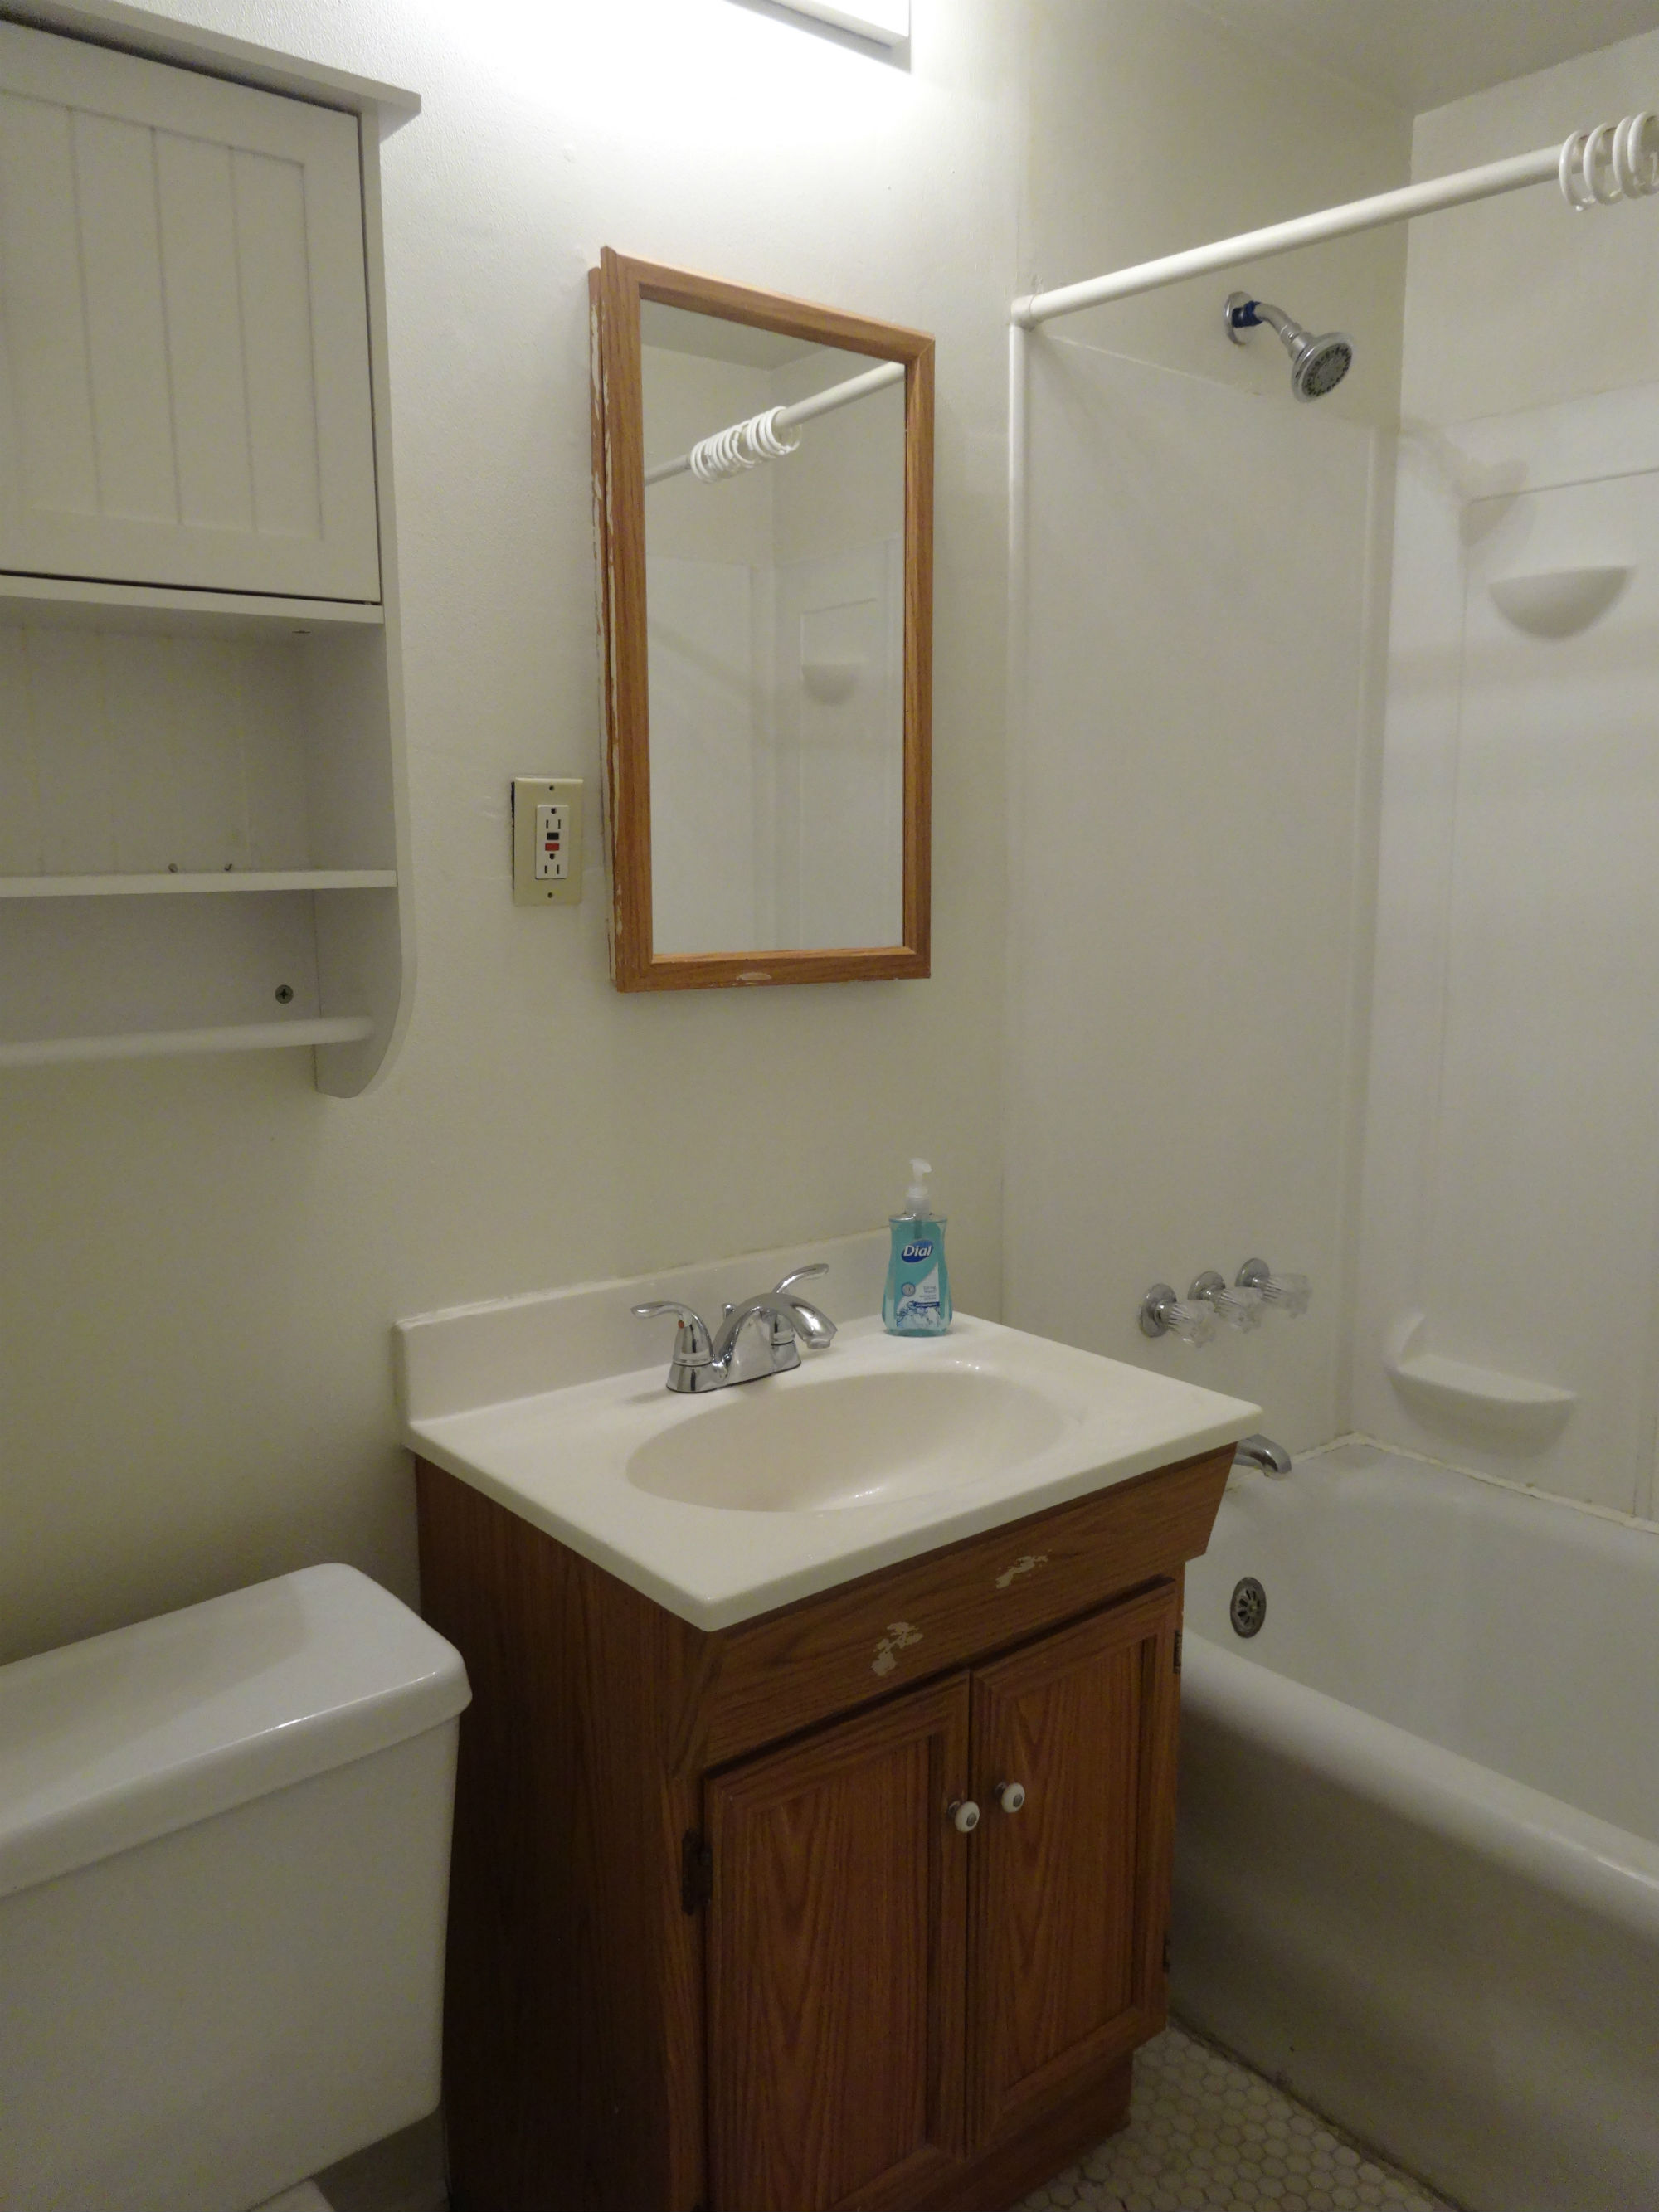 Ideal Right side bathroom with newer vanity and toilet